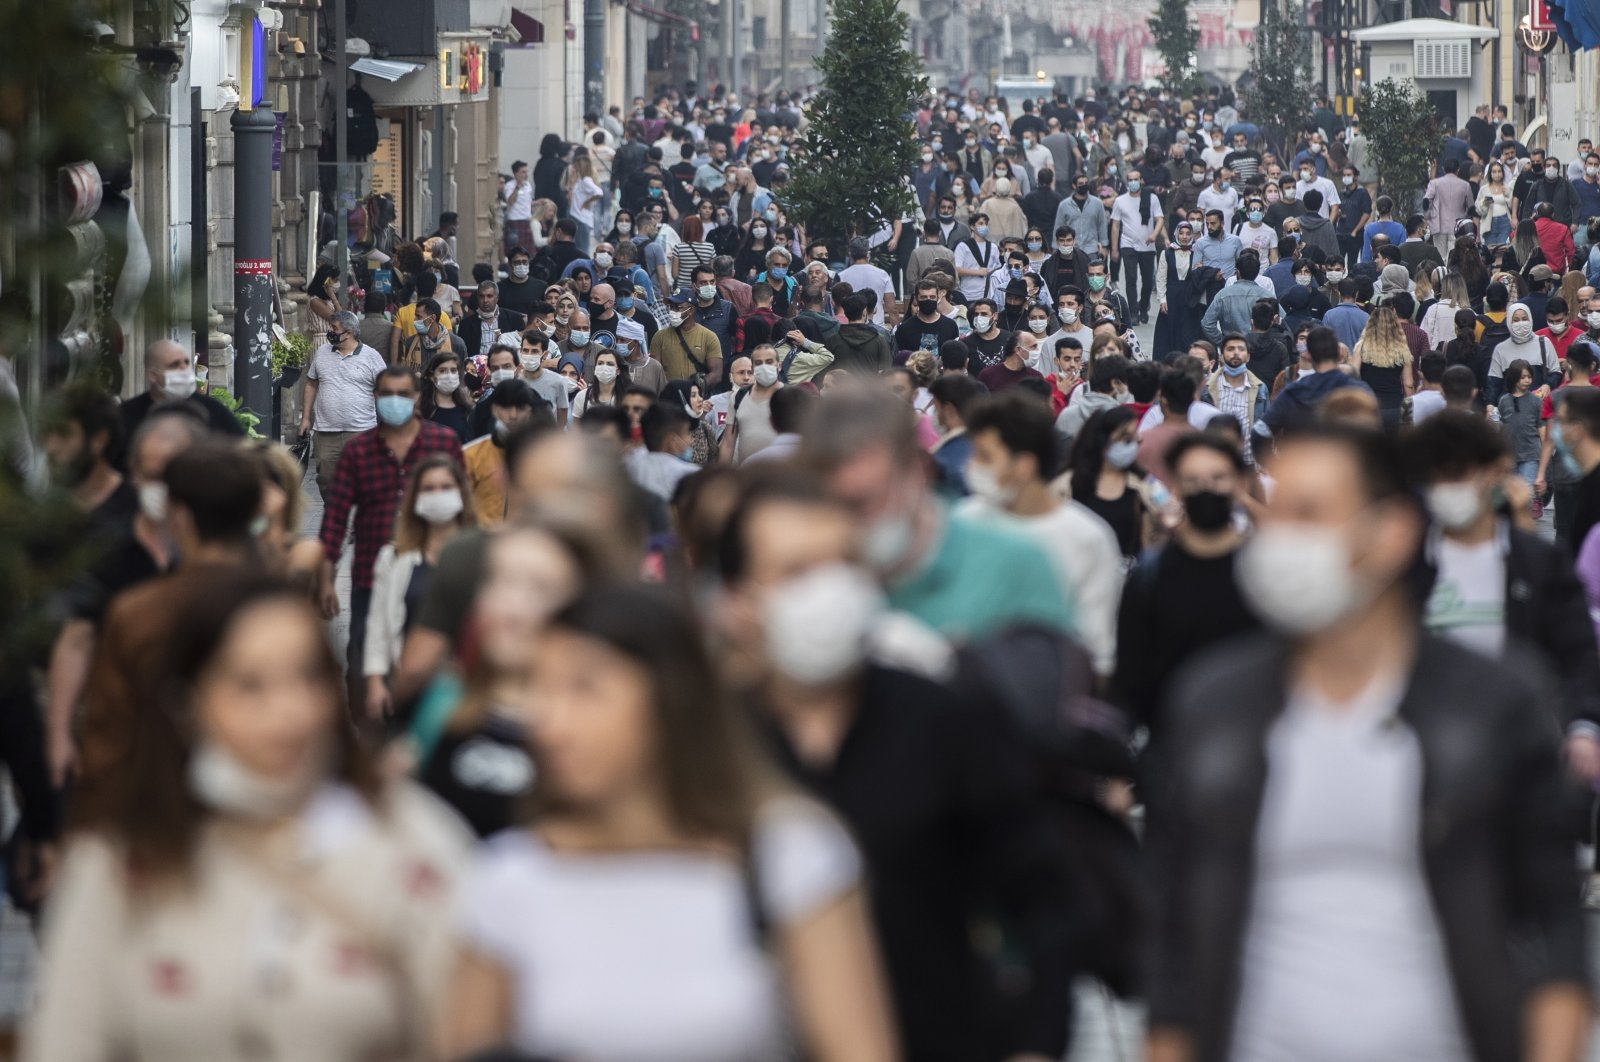 People wearing protective masks walk on Istiklal Avenue amid the ongoing coronavirus pandemic in Istanbul, Turkey, Oct. 25, 2020. (EPA Photo)